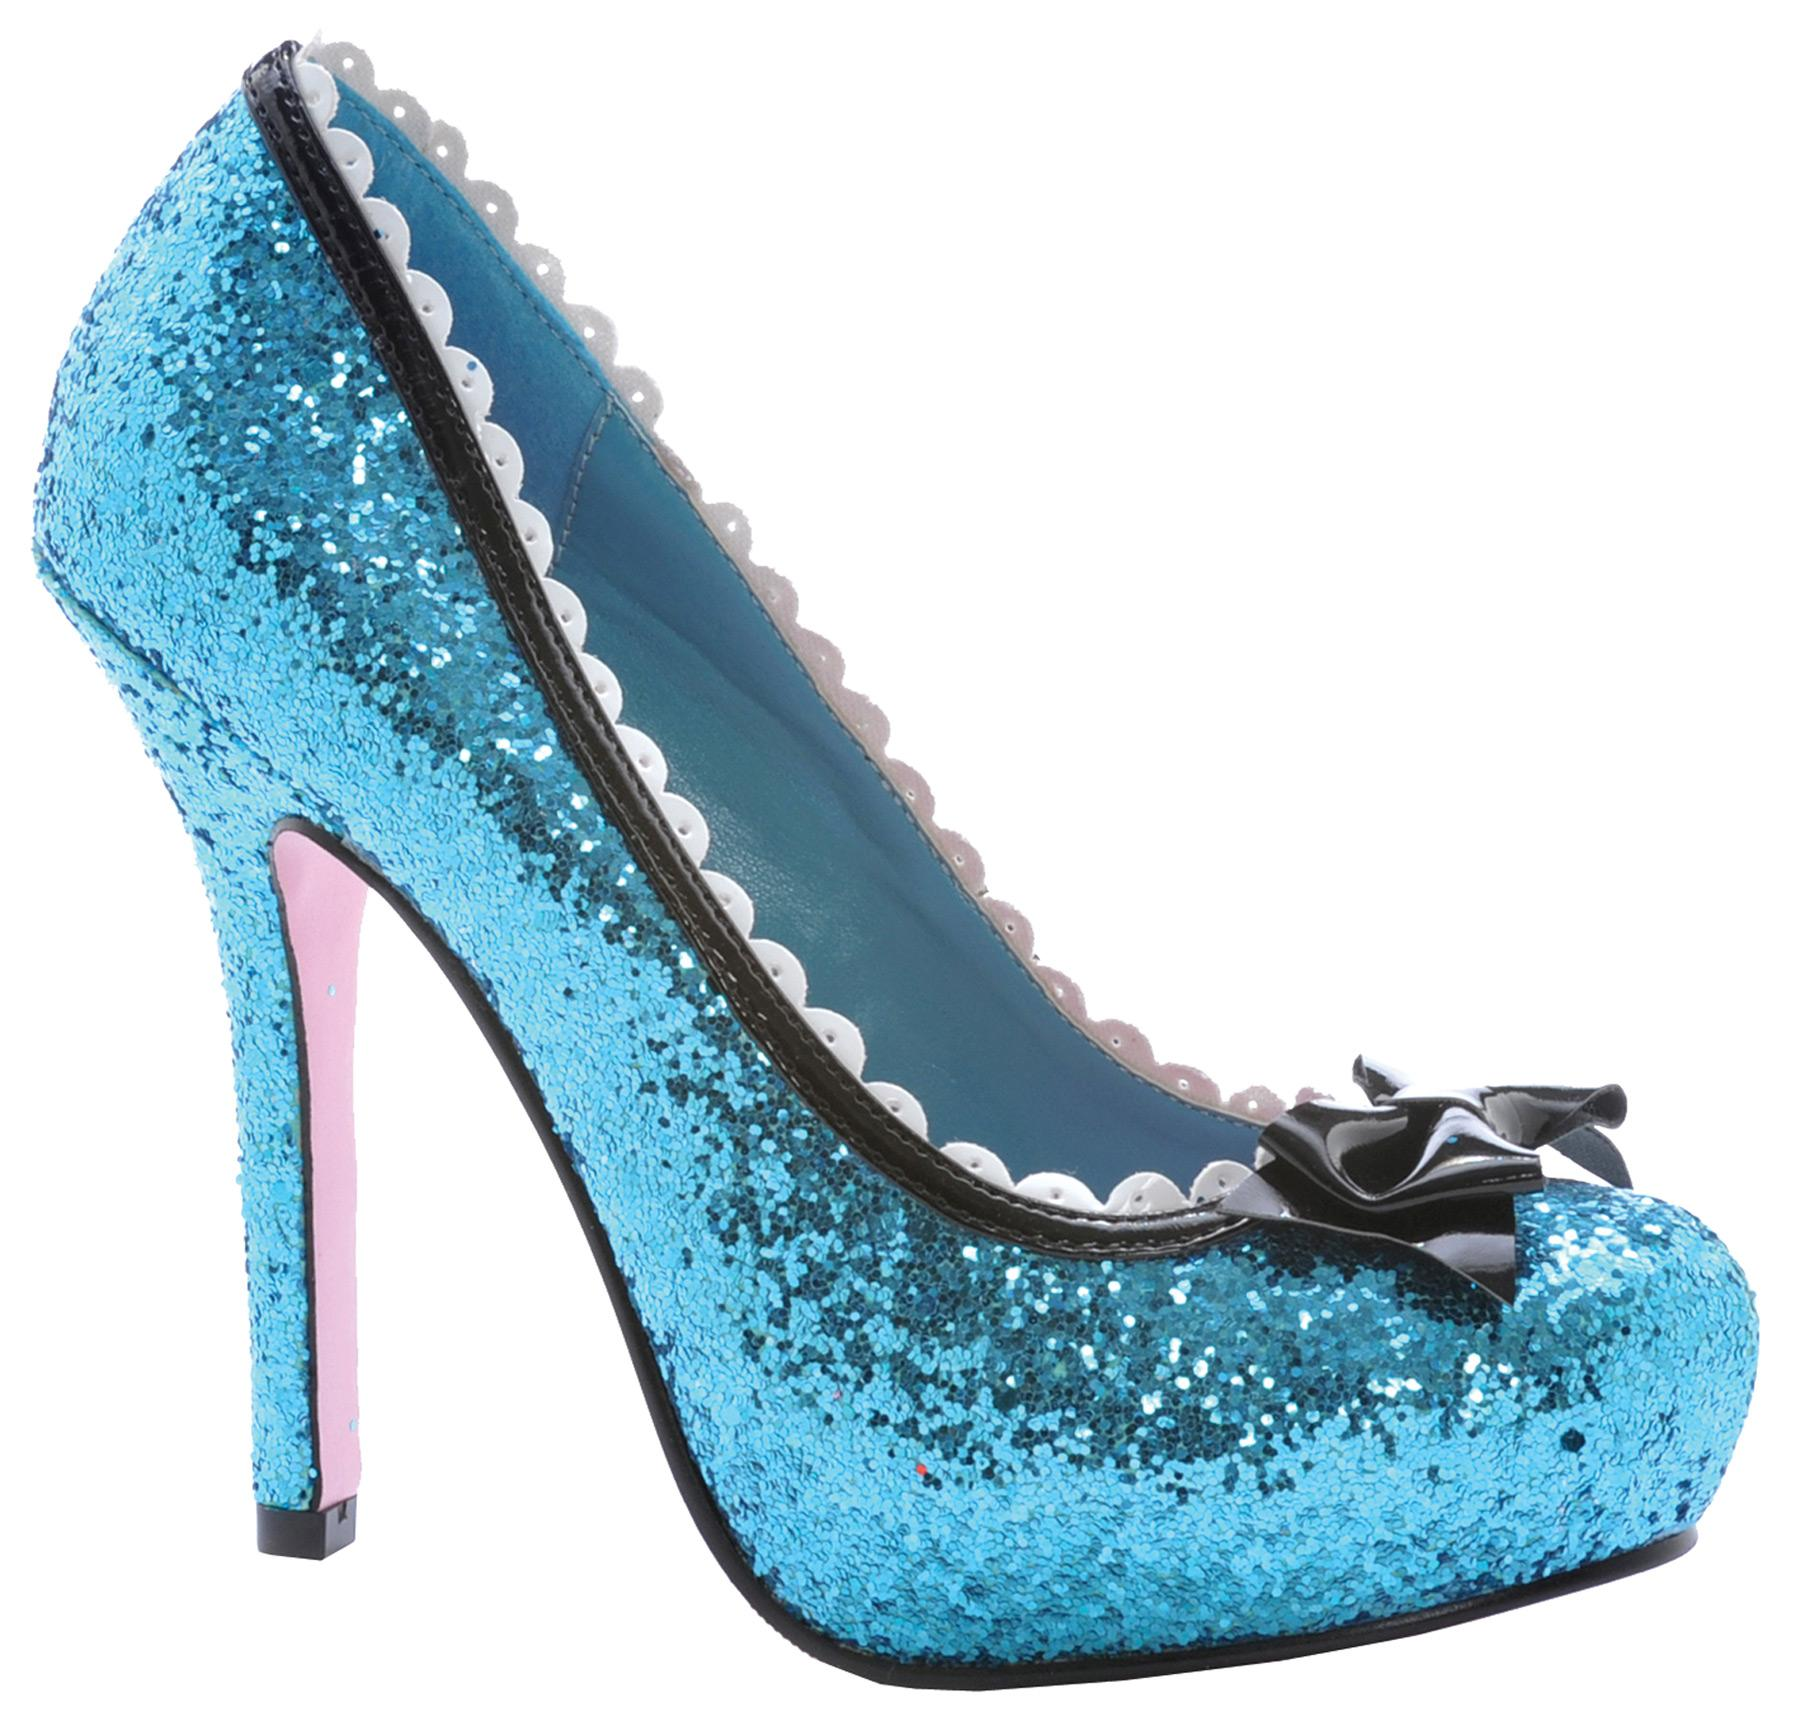 SHOES PRINCESS GLITTER BU SZ 6